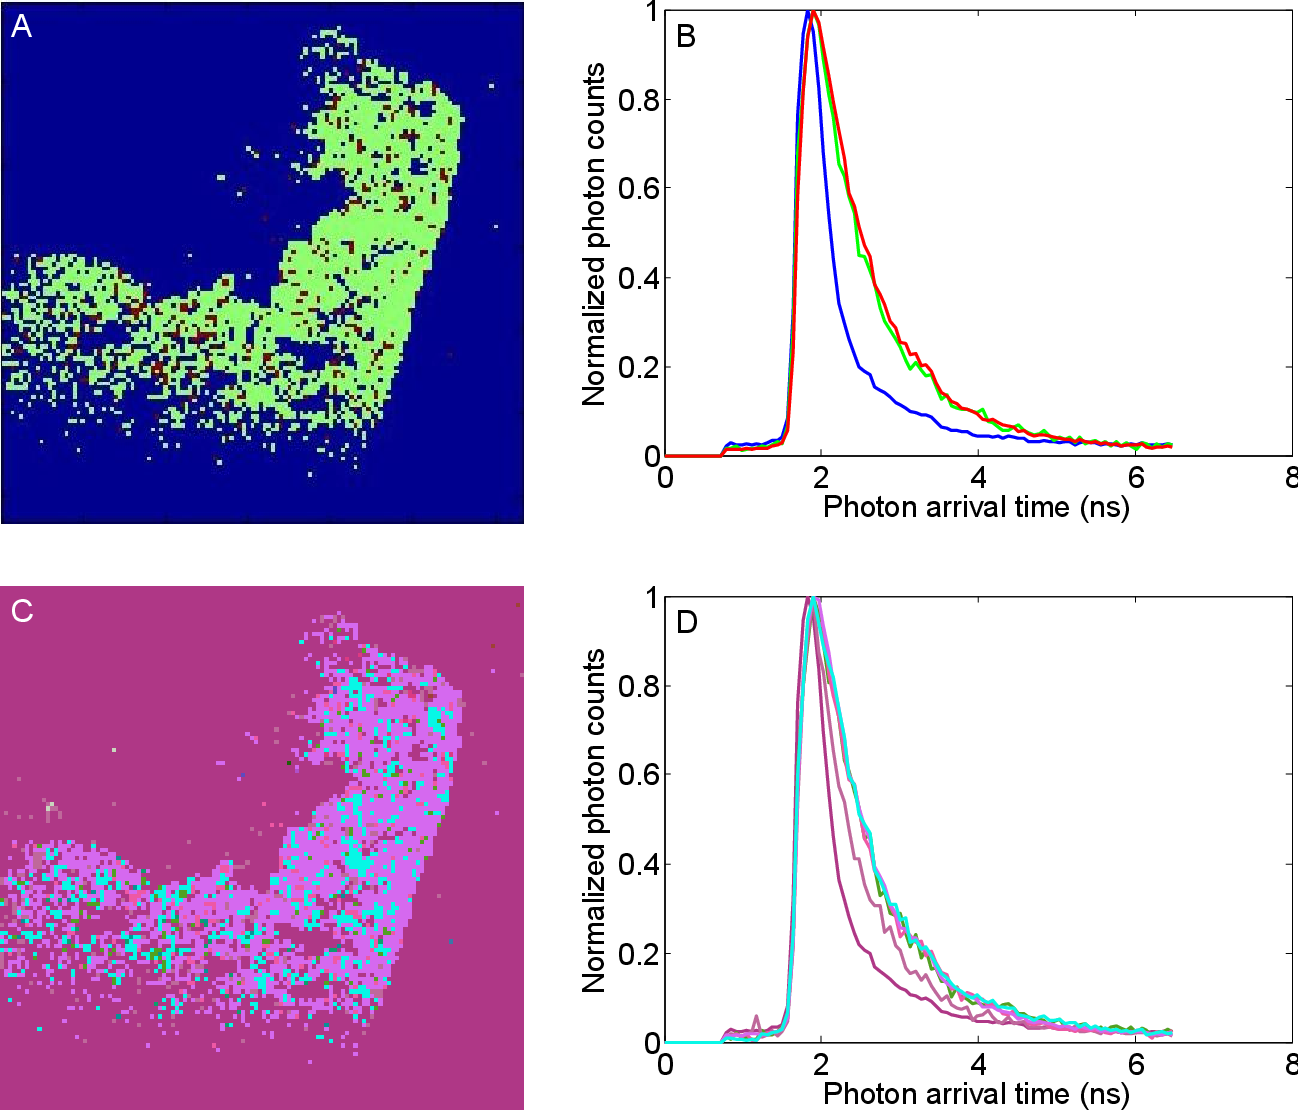 Figure 2 for Automatic Segmentation of Fluorescence Lifetime Microscopy Images of Cells Using Multi-Resolution Community Detection